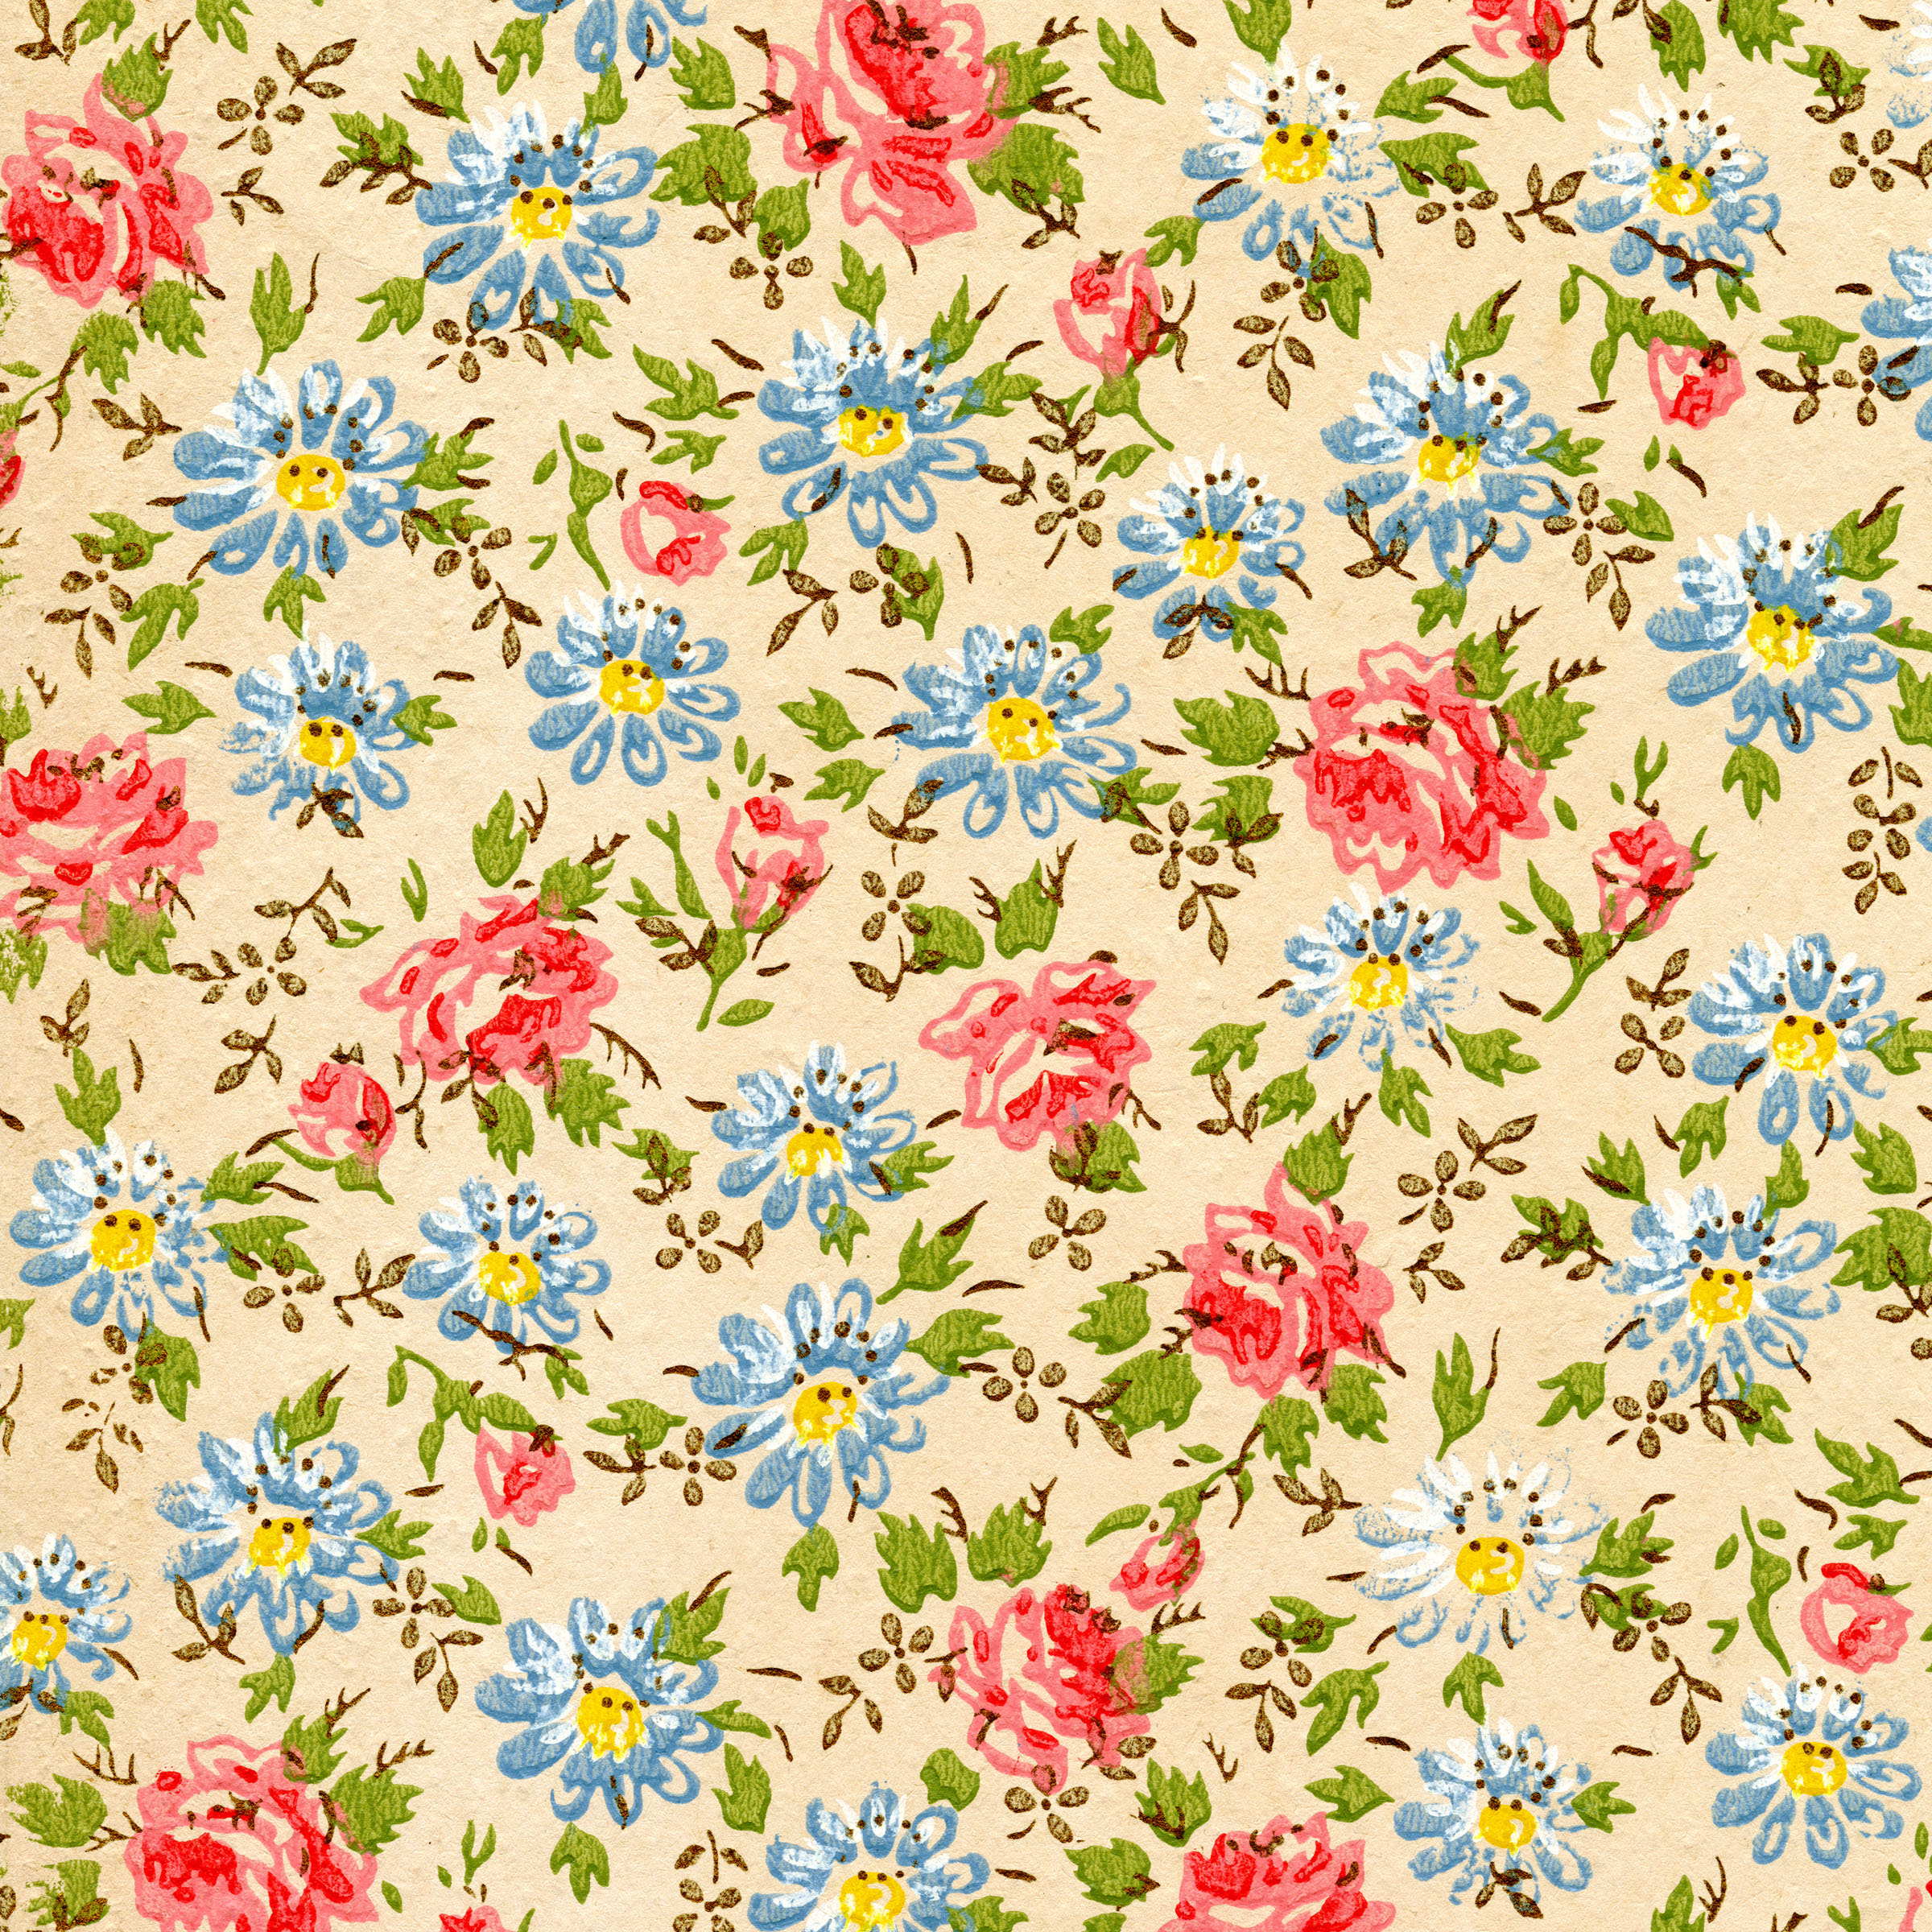 Tumblr Floral Backgrounds Google Images On We Heart It